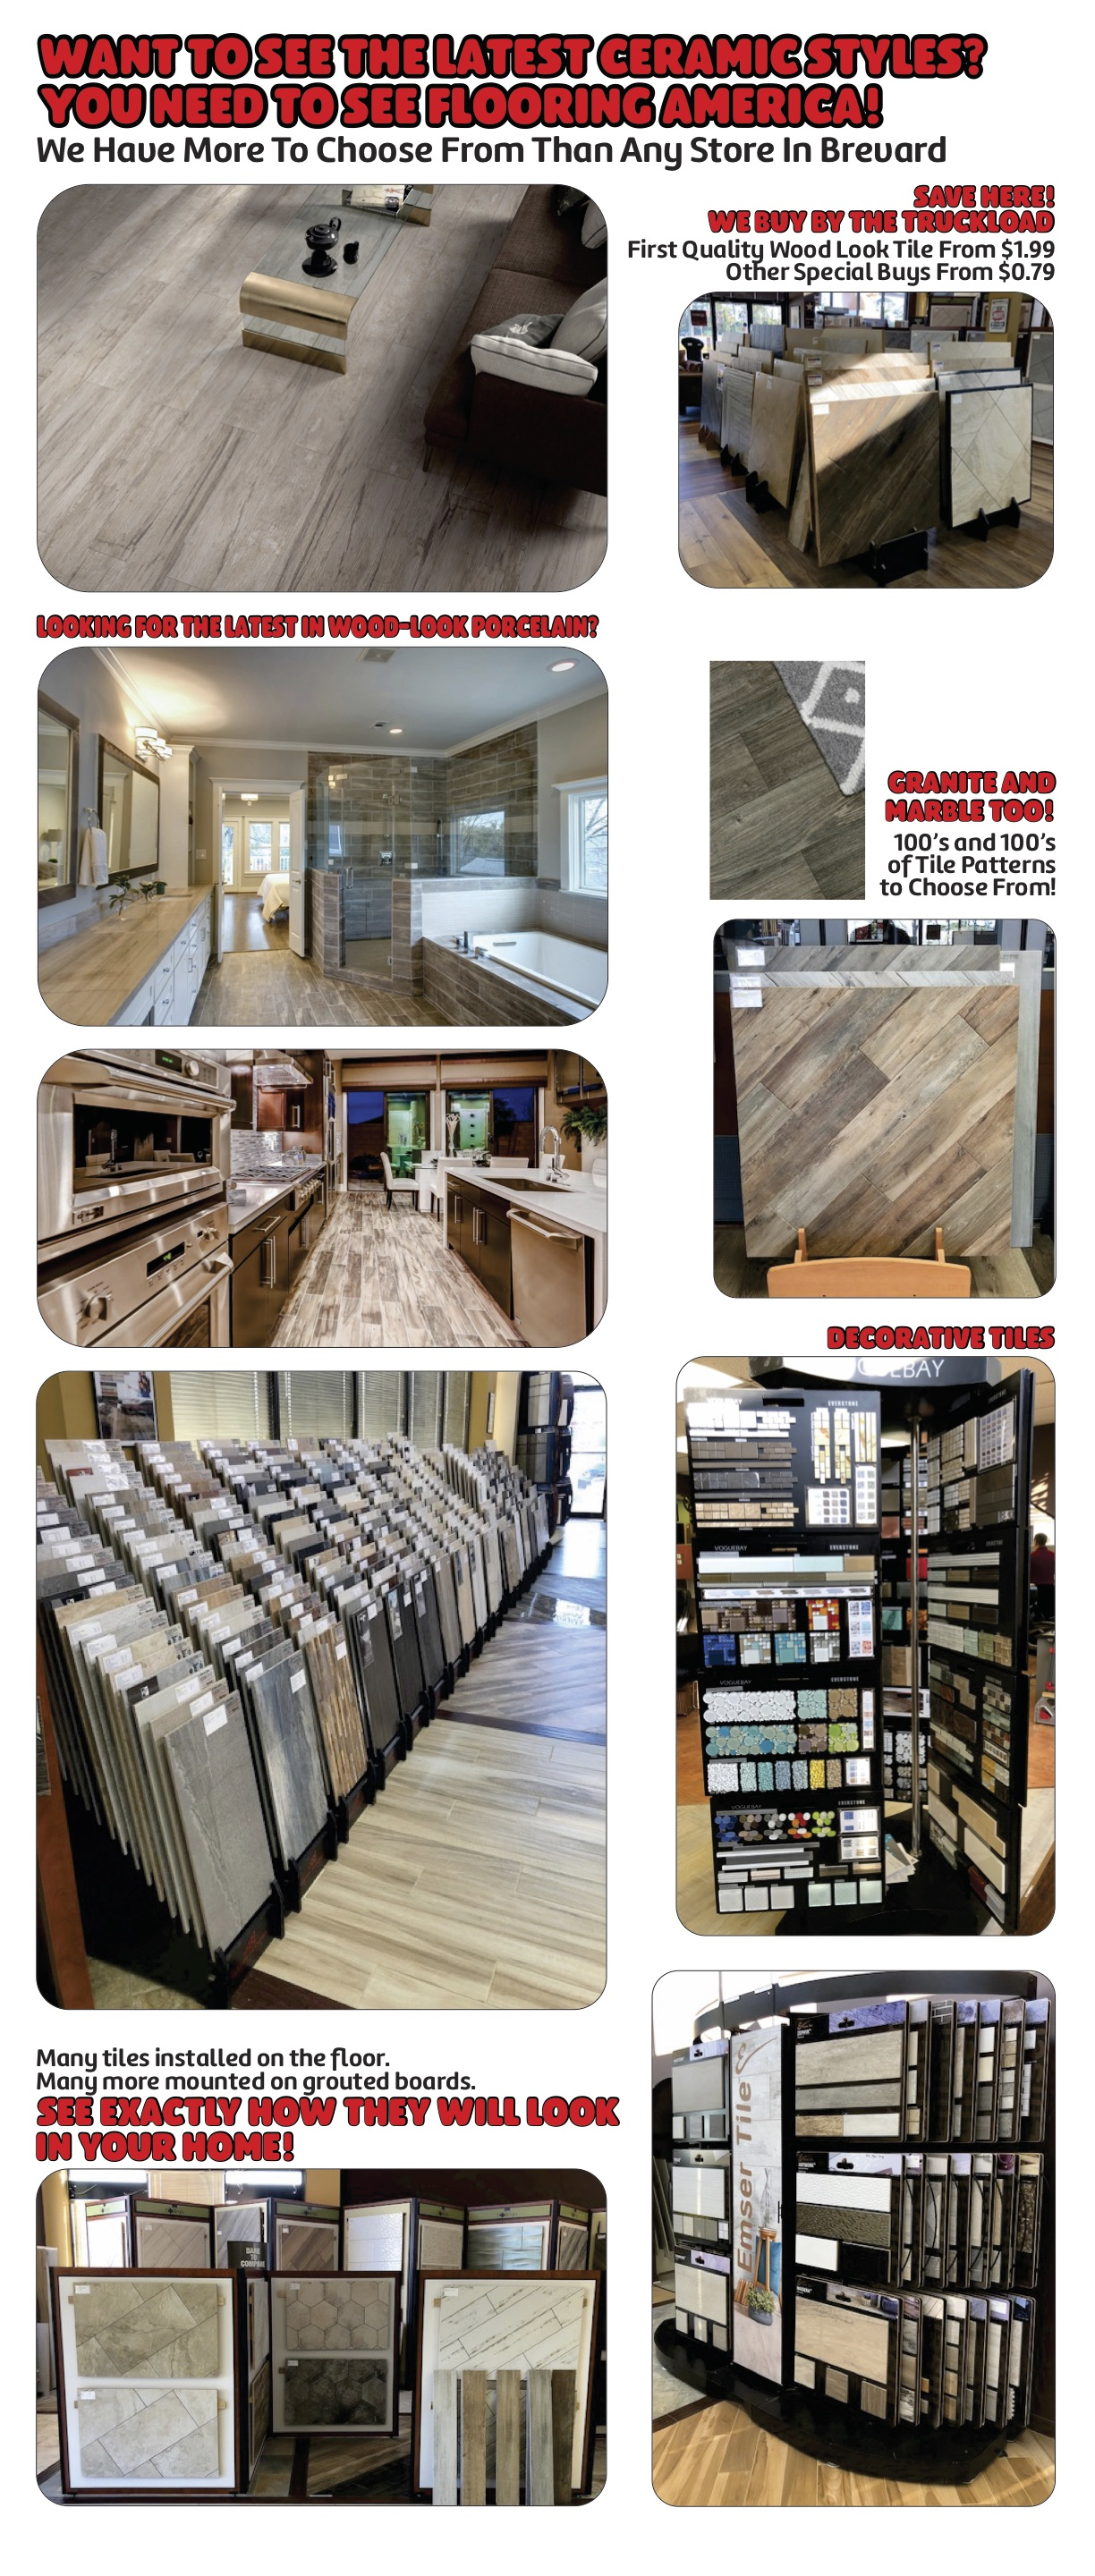 Quality Flooring Great Southeast Flooring America